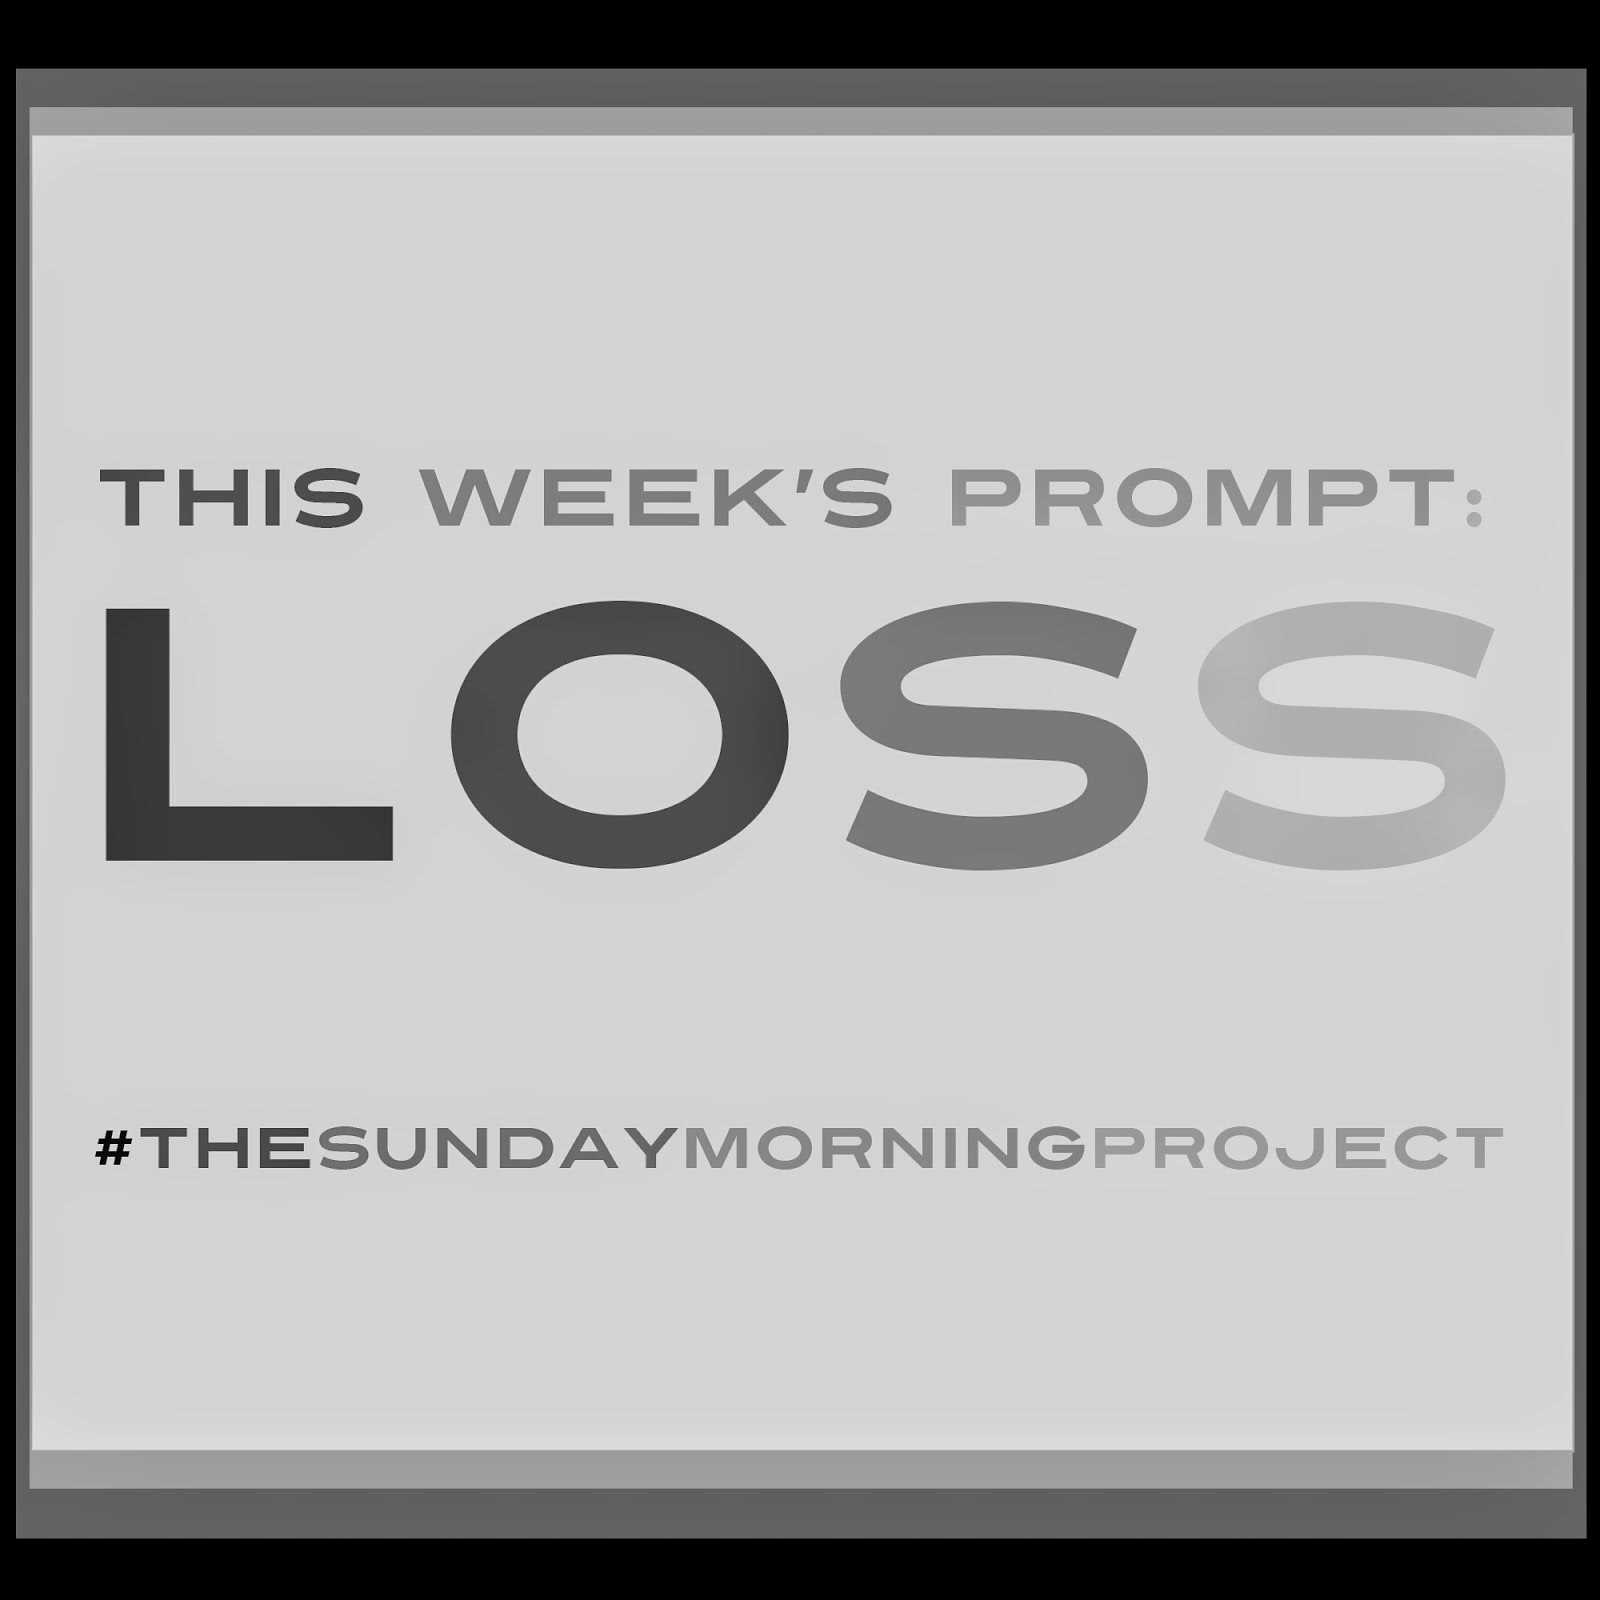 This week's The Sunday Morning Project's art prompt: Loss